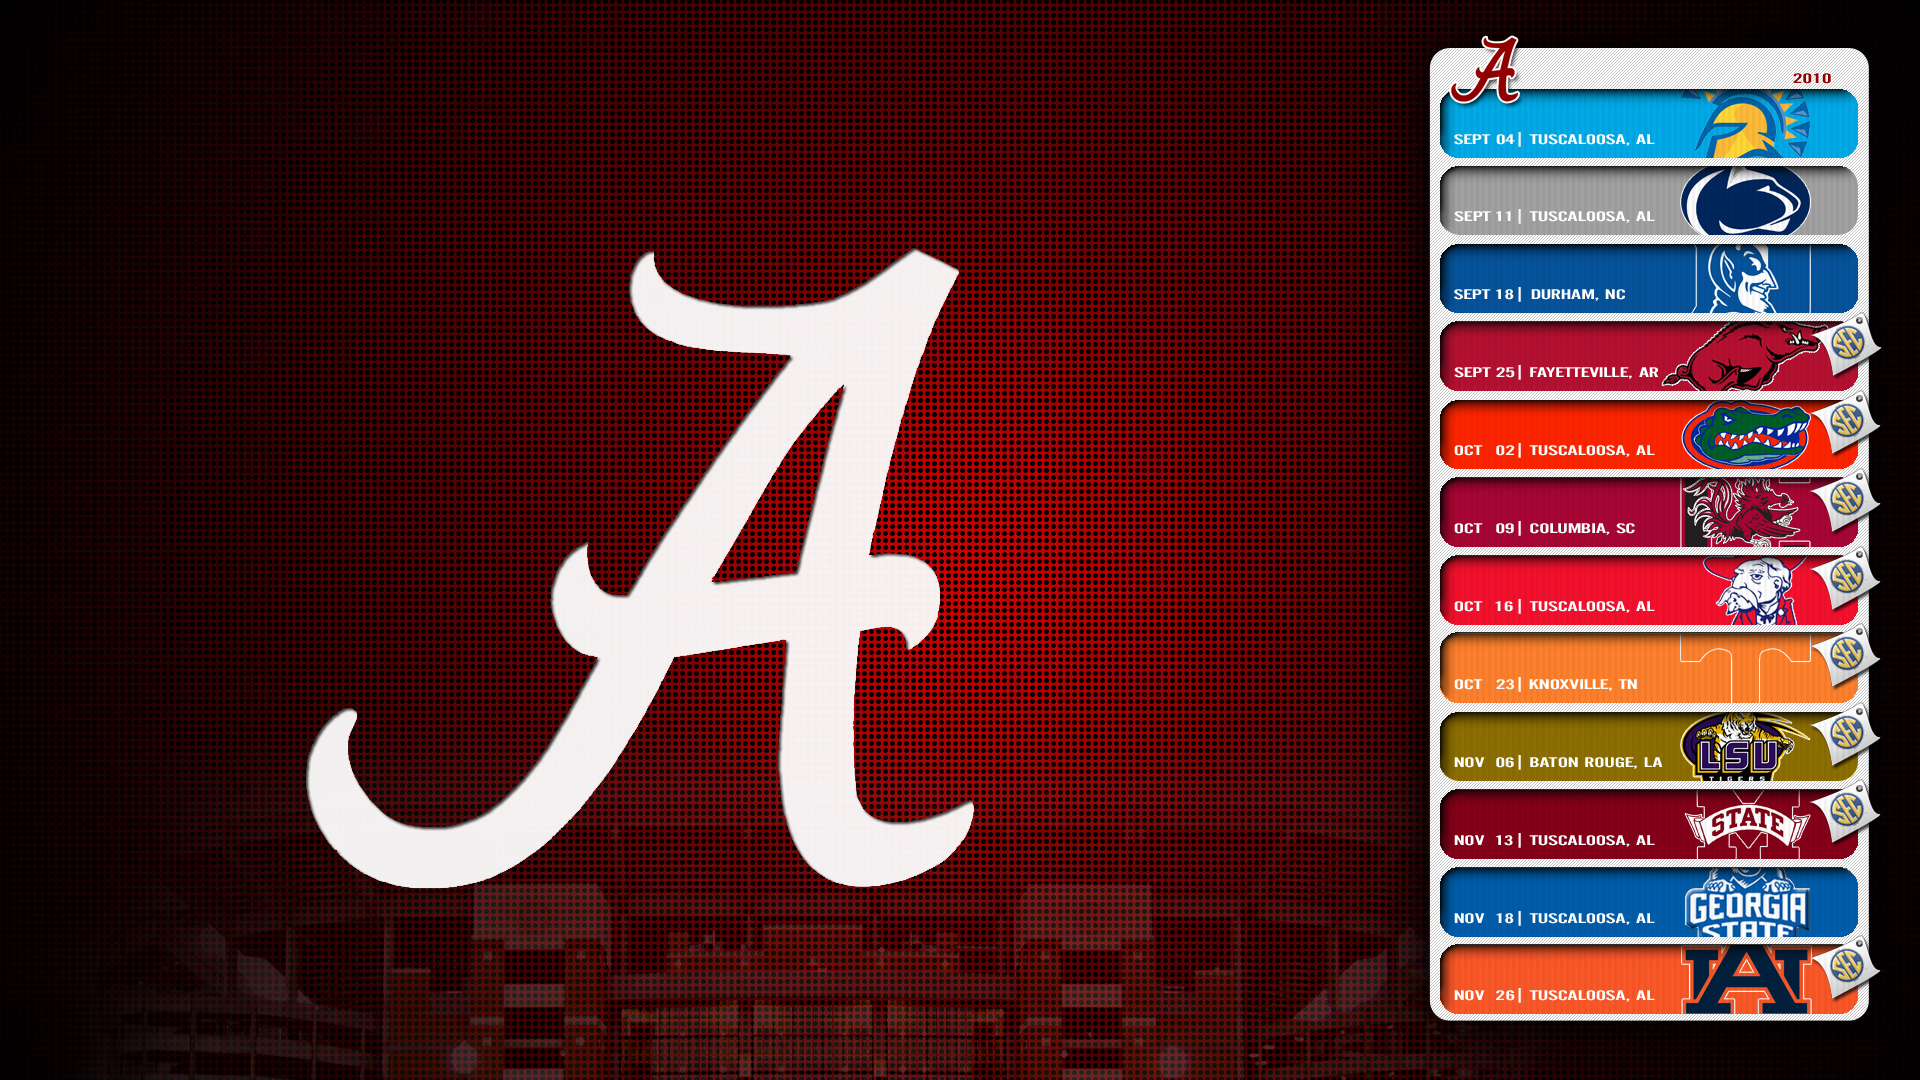 Alabama Crimson Tide Logo wallpaper   243458 1920x1080